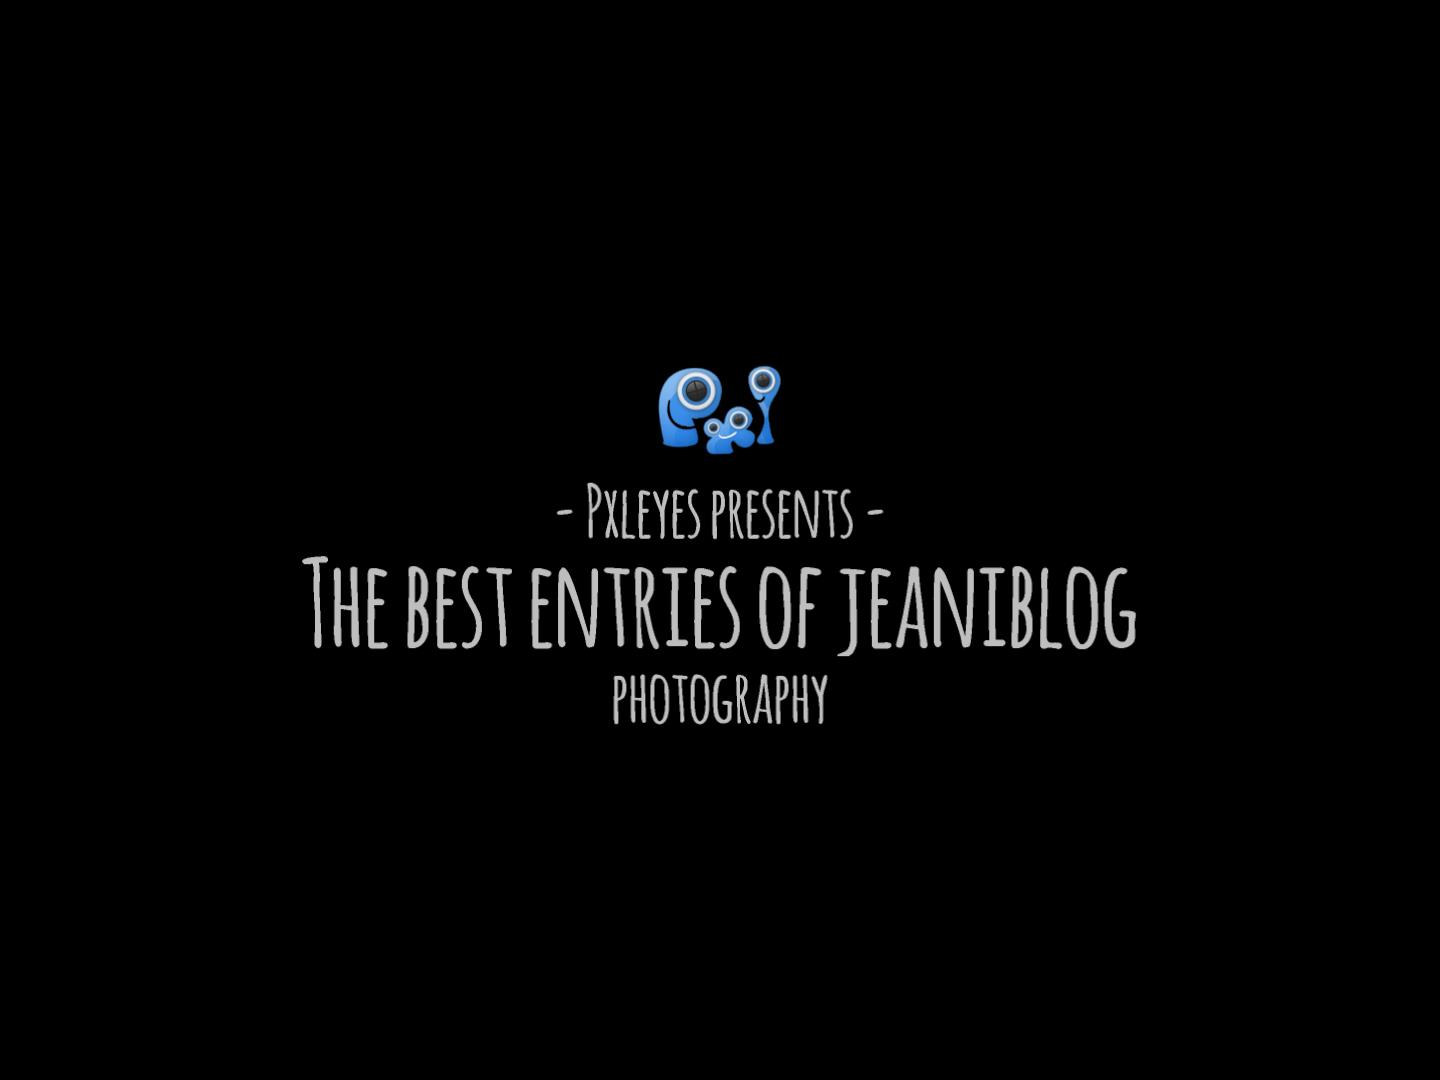 The best entries of jeaniblog